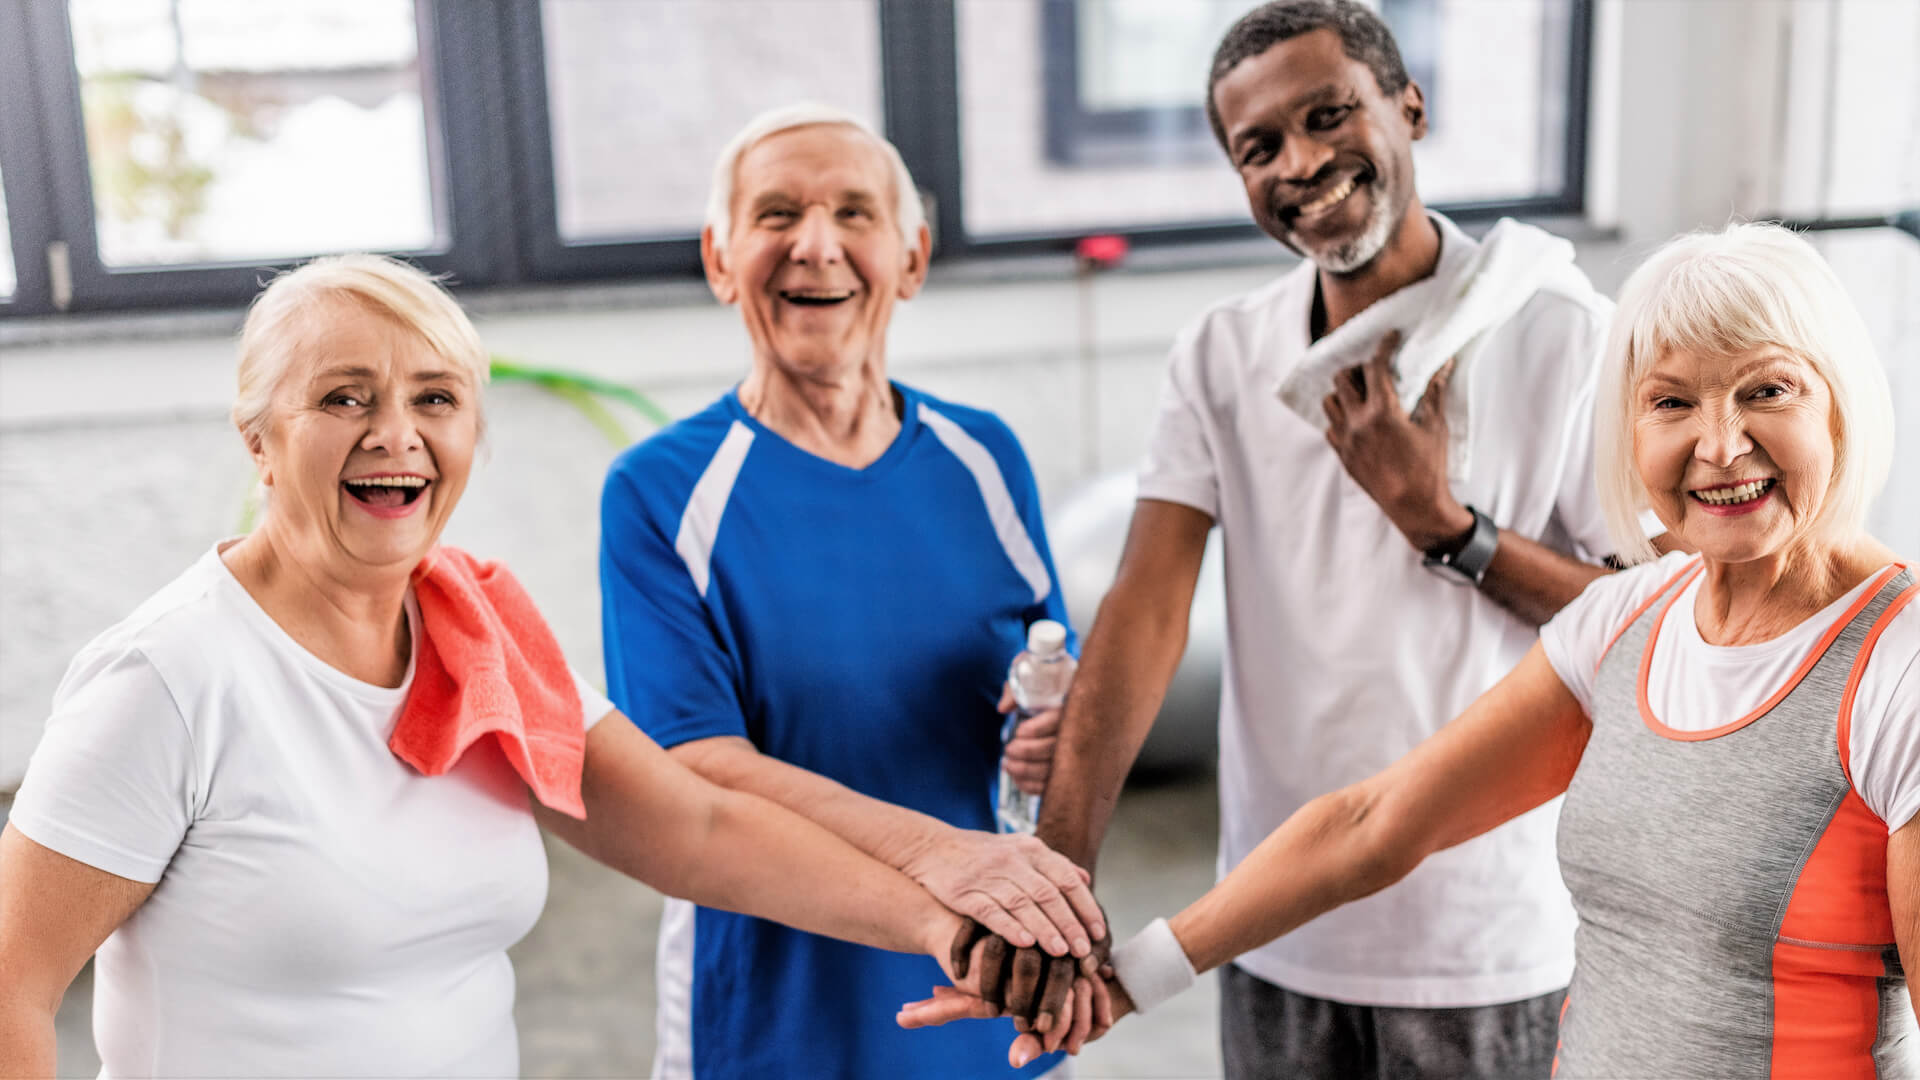 laughing senior multiculutral sportspeople putting hands together at gym